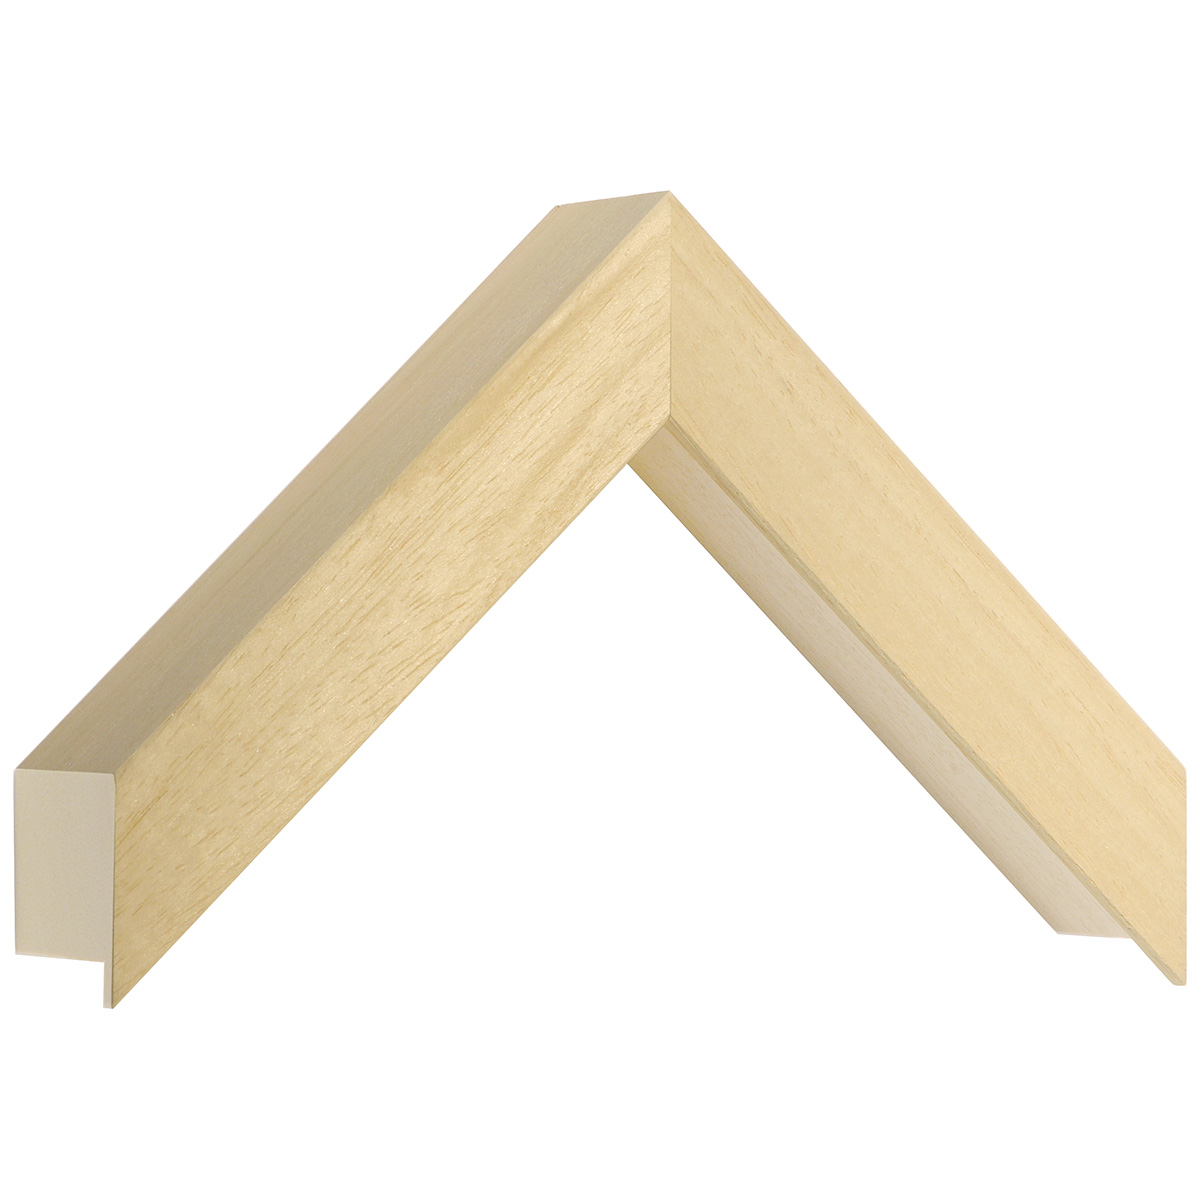 Moulding ayous, width 30mm, height 55mm, bare timber